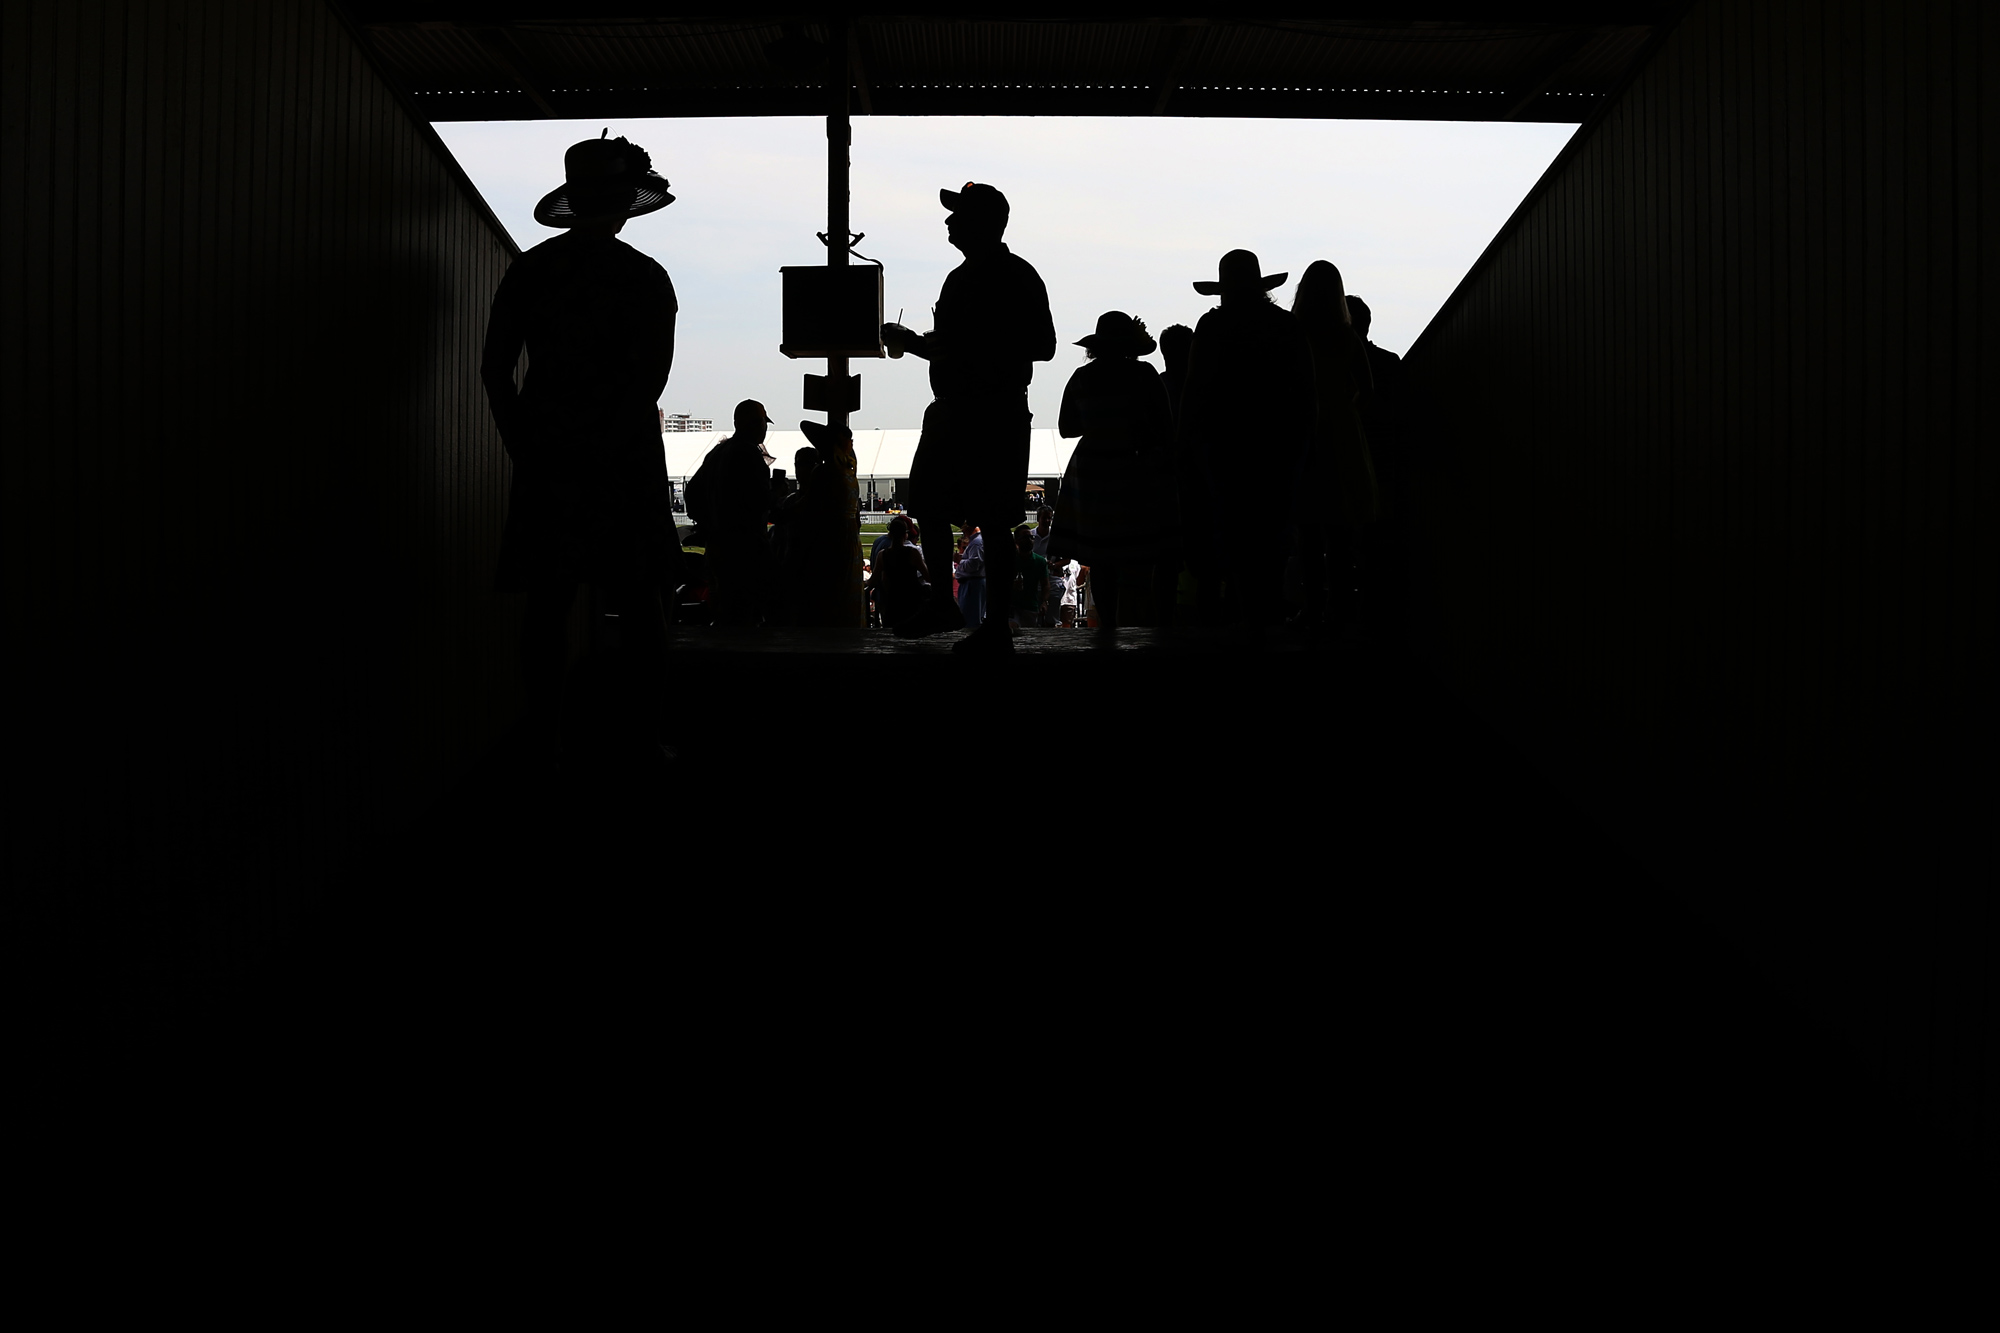 Fans walk through the grandstand before the start of the 140th Preakness Stakes at Pimlico Race Course on May 16, 2015 in Baltimore, Maryland.